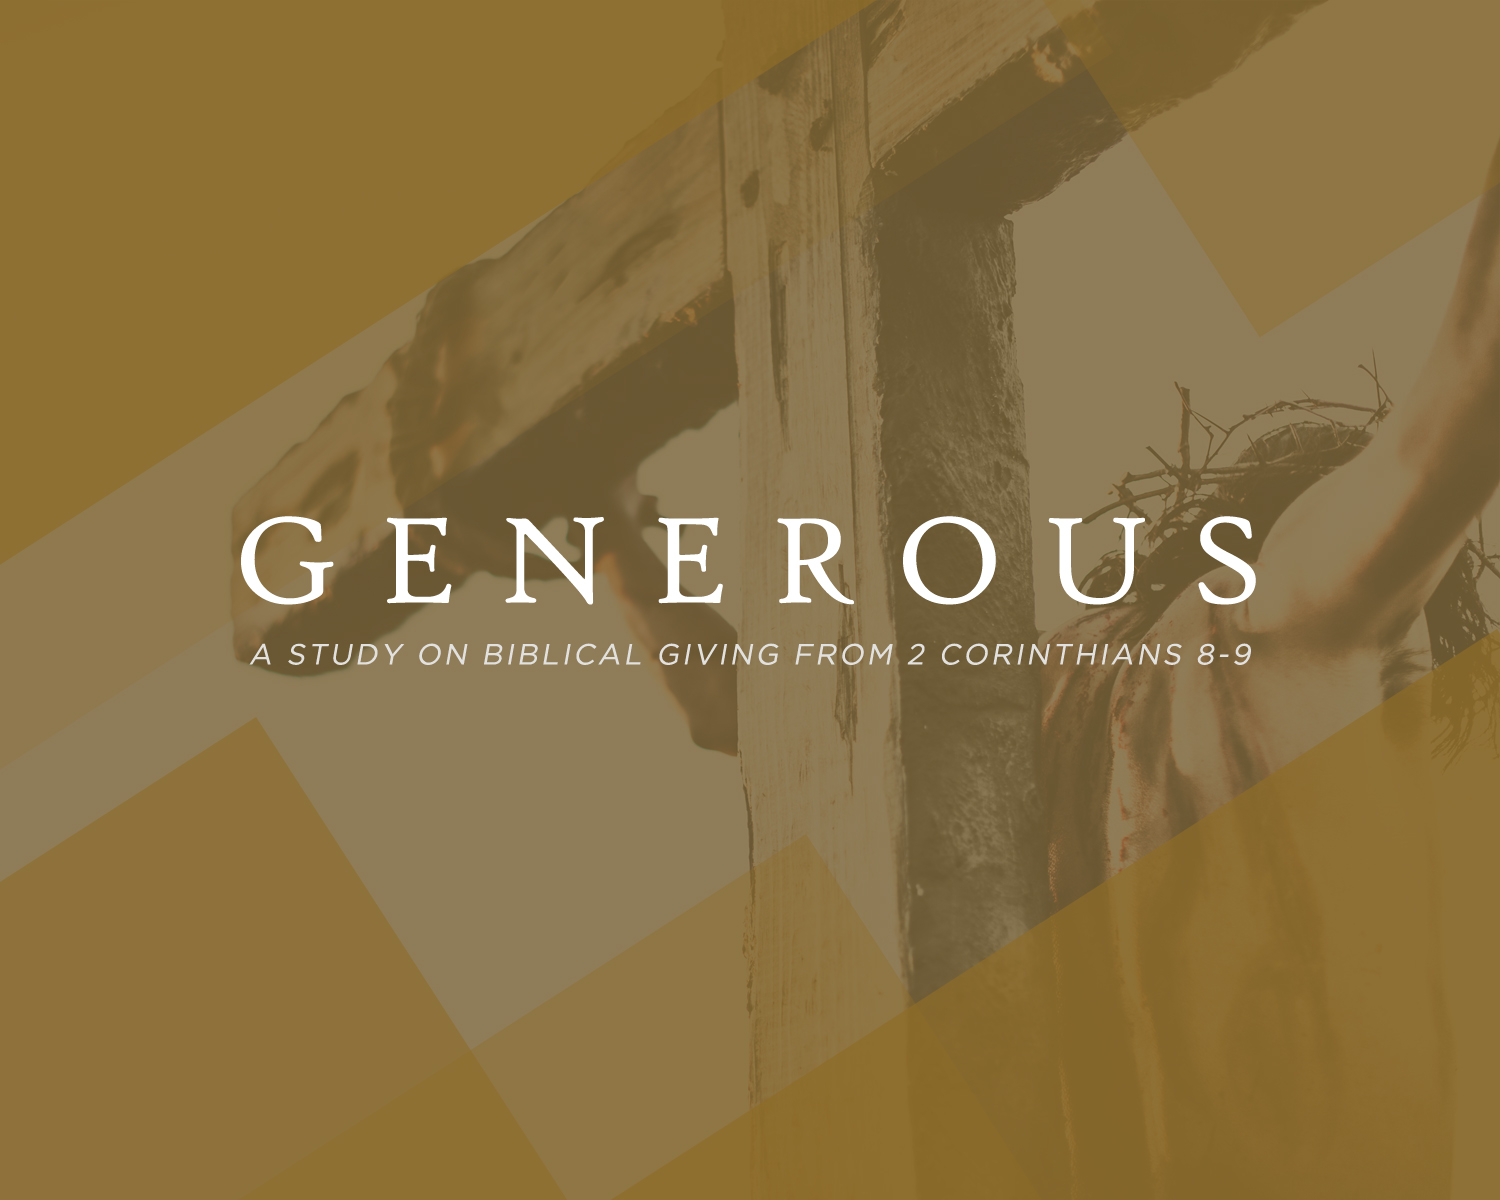 Generous: A Study on Biblical Giving